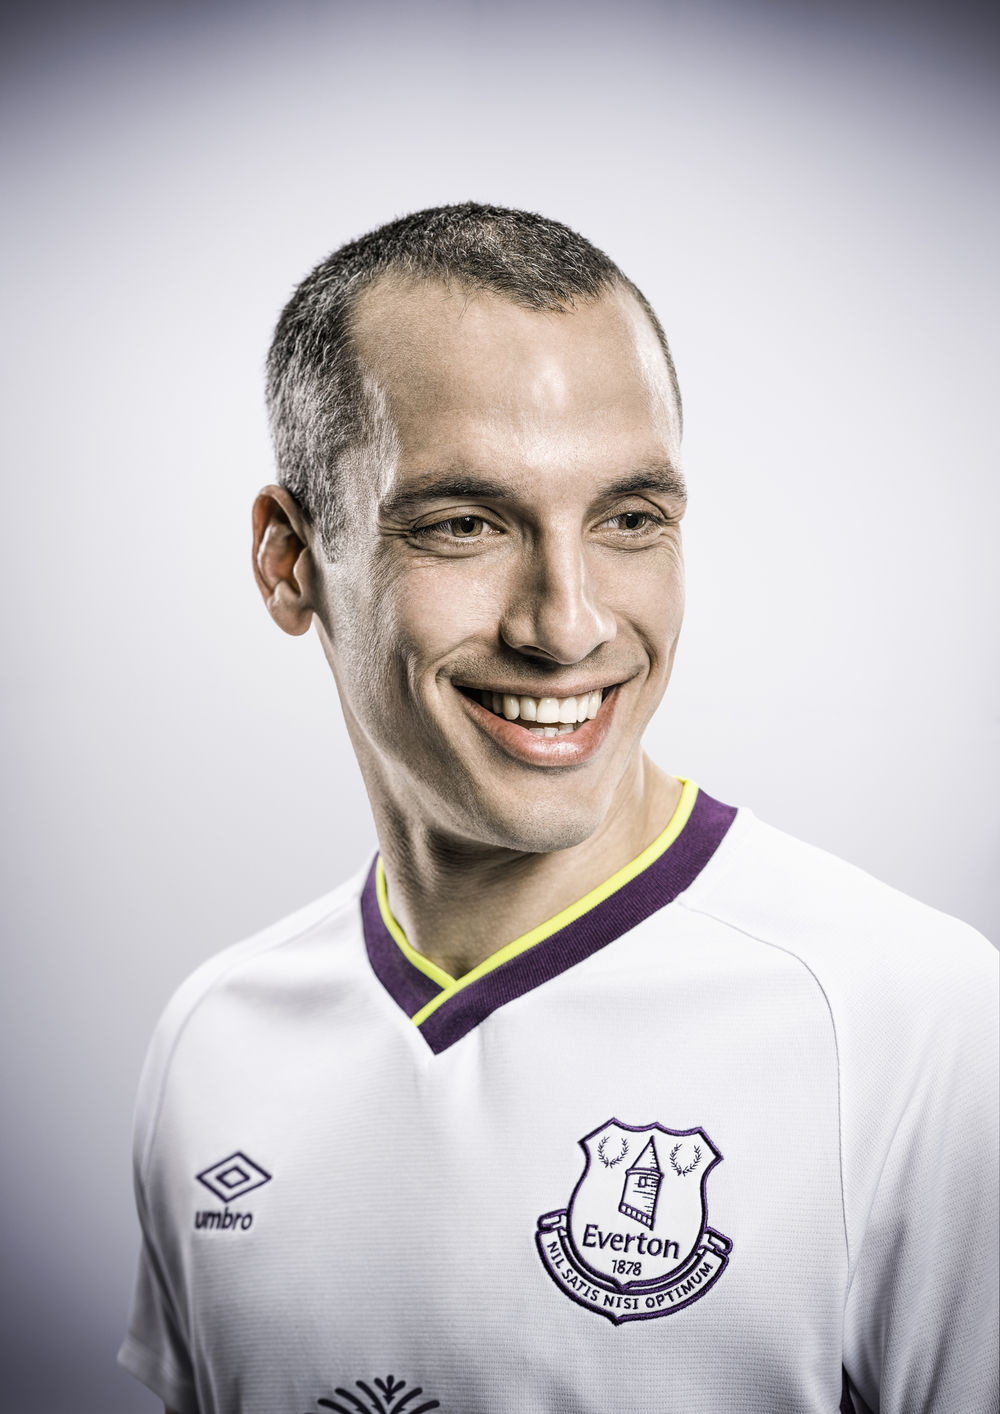 Everton-Third-2014-Osman-Portrait.jpg